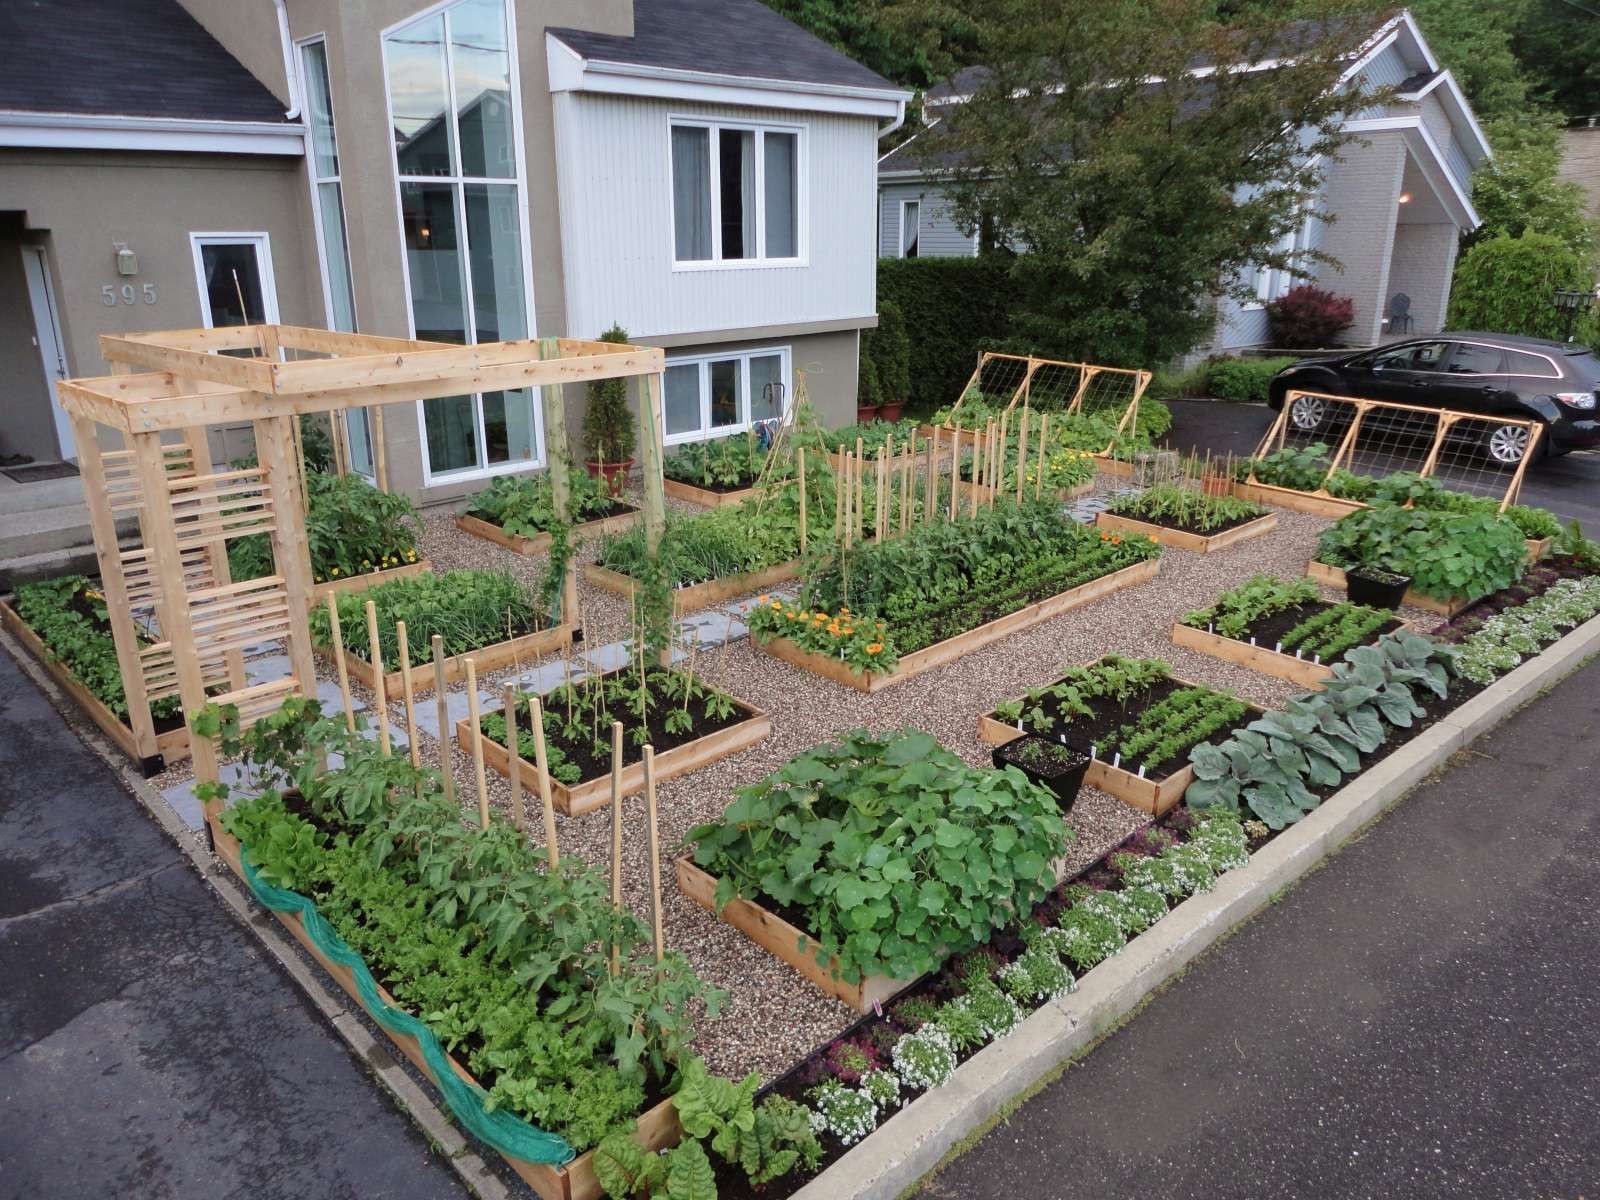 backyard garden design ideas with front yard vegetable garden - Vegetable Garden Ideas Designs Raised Gardens